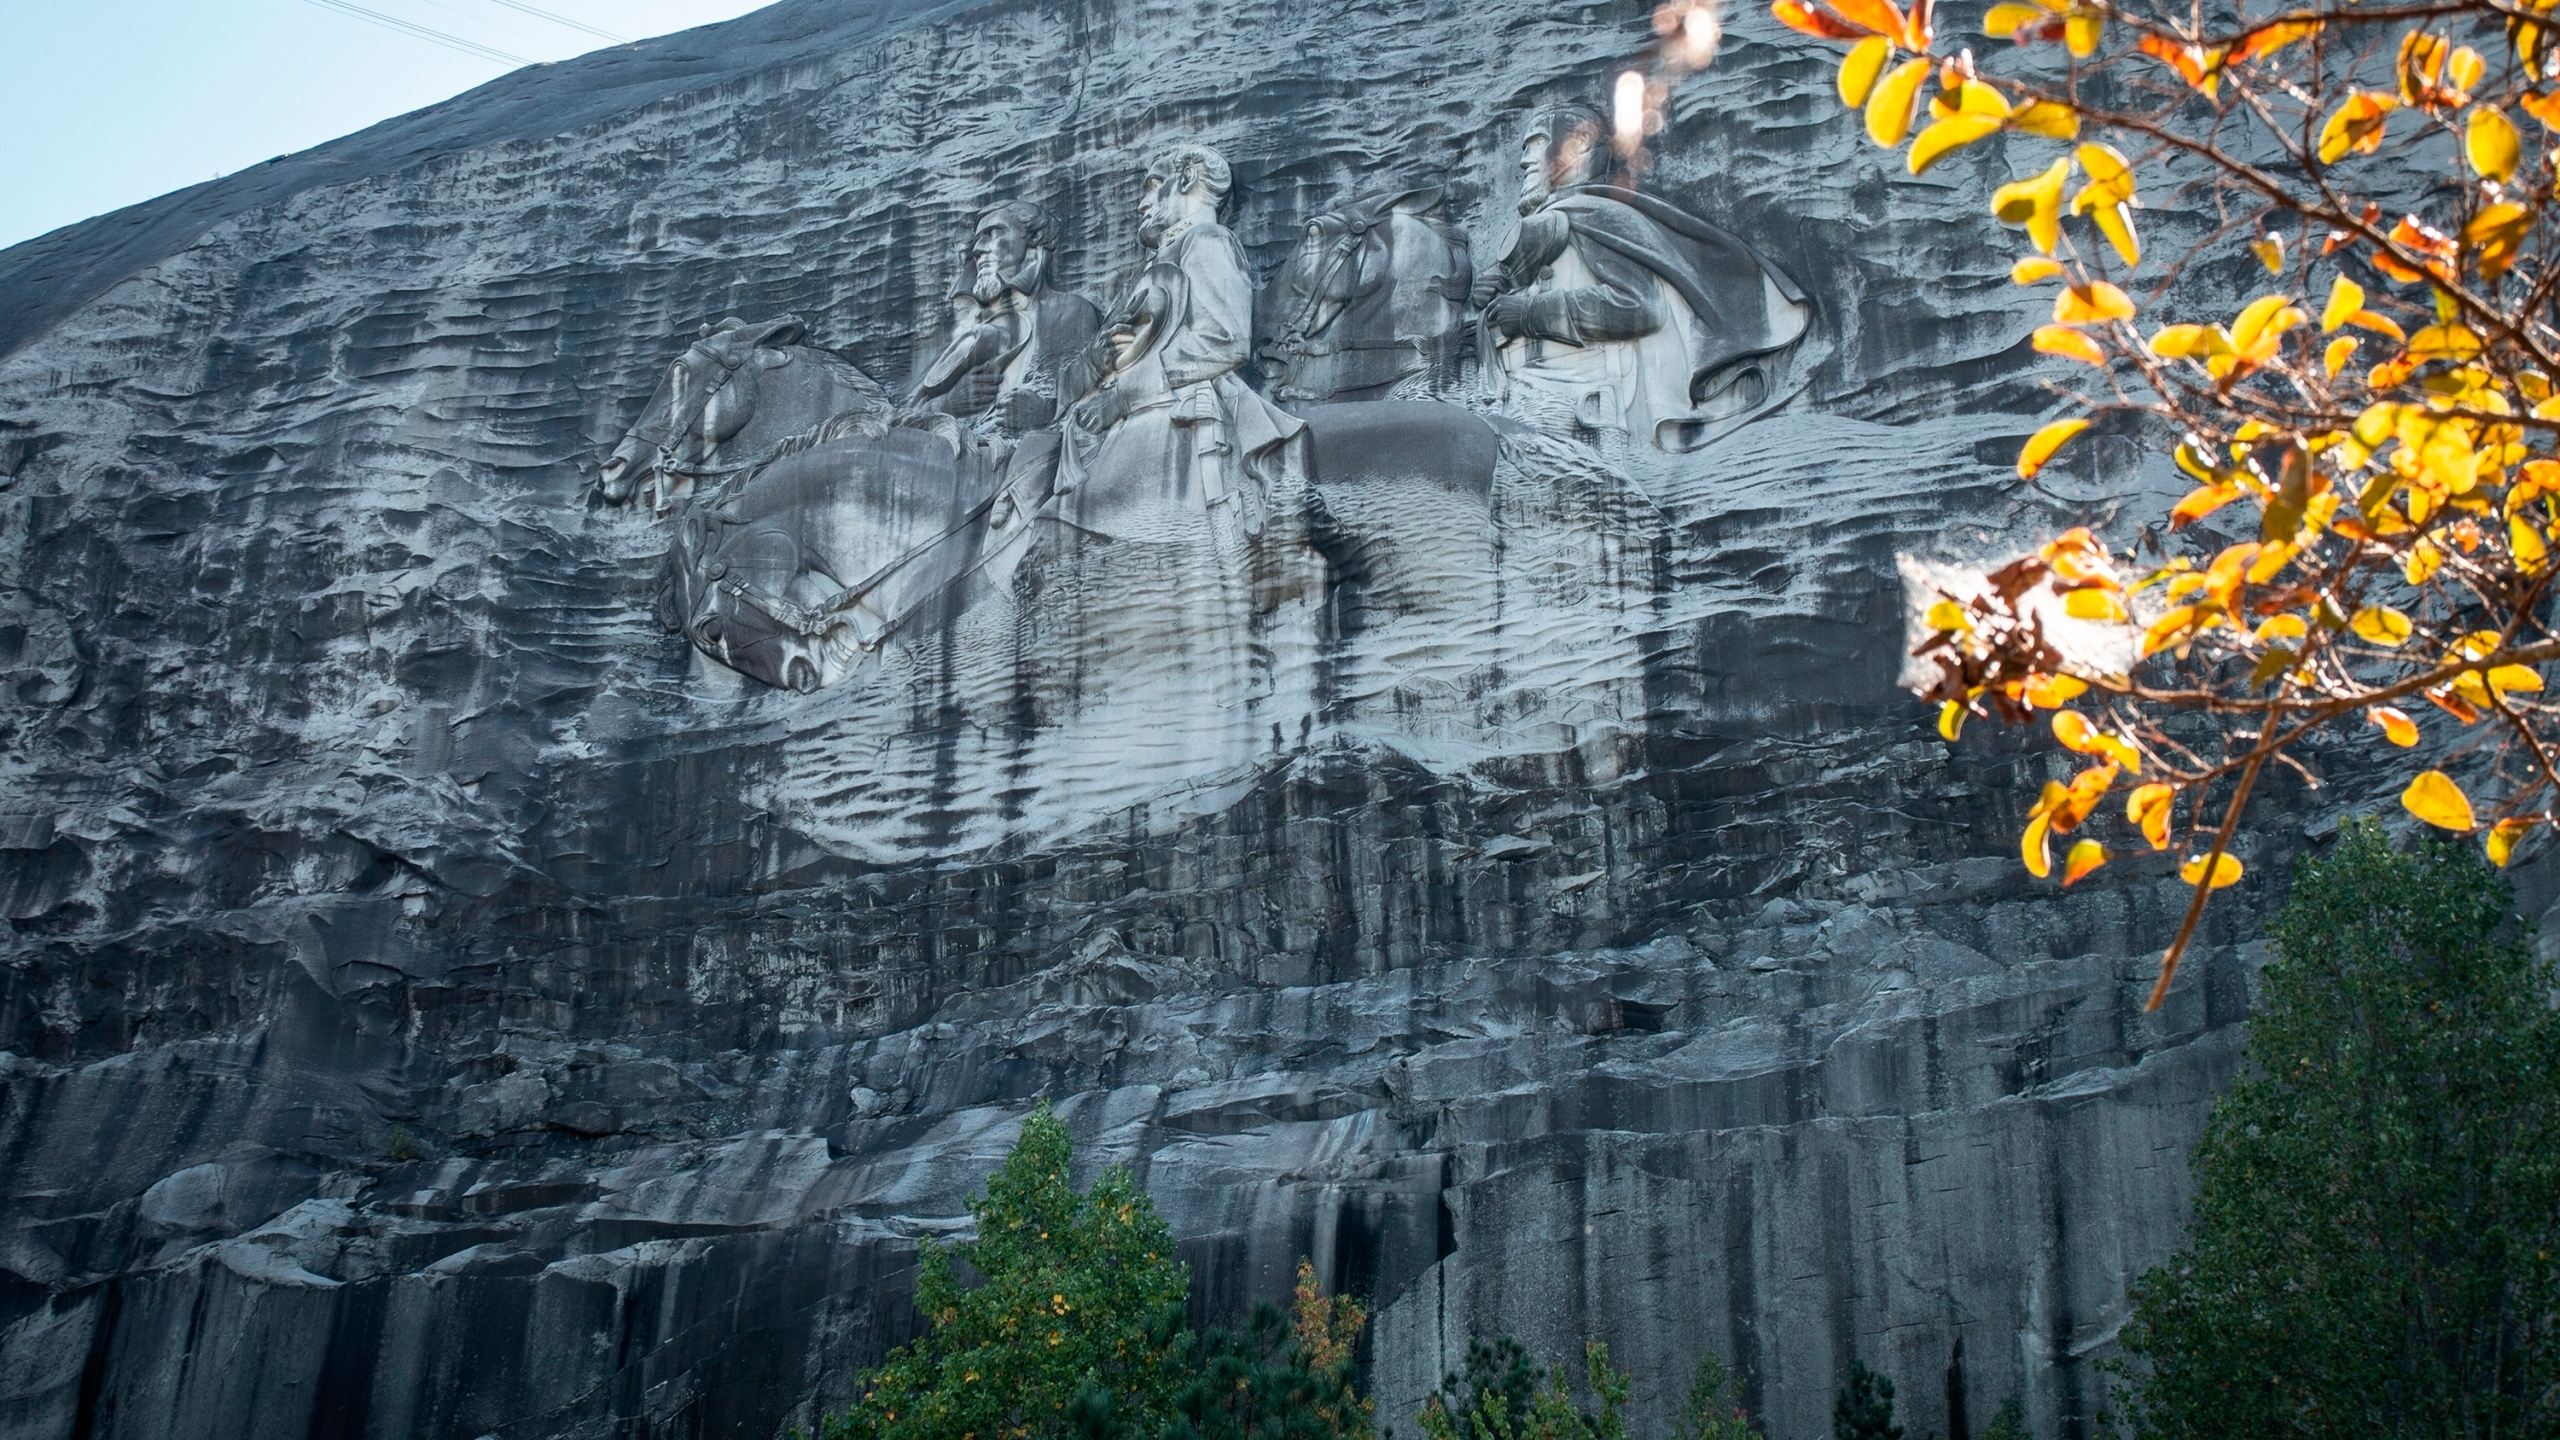 FILE- In this Oct. 5, 2020 file photo, a massive mountainside carving depicting Confederate leaders Jefferson Davis, Robert E. Lee and Stonewall Jackson is shown, in Stone Mountain, Ga. The board overseeing an Atlanta area park that has centuries-old ties to the Ku Klux Klan and contains the largest Confederate monument ever crafted will be headed for the first time by an African American, Rev. Abraham Mosley. (AP Photo/Ron Harris, File)